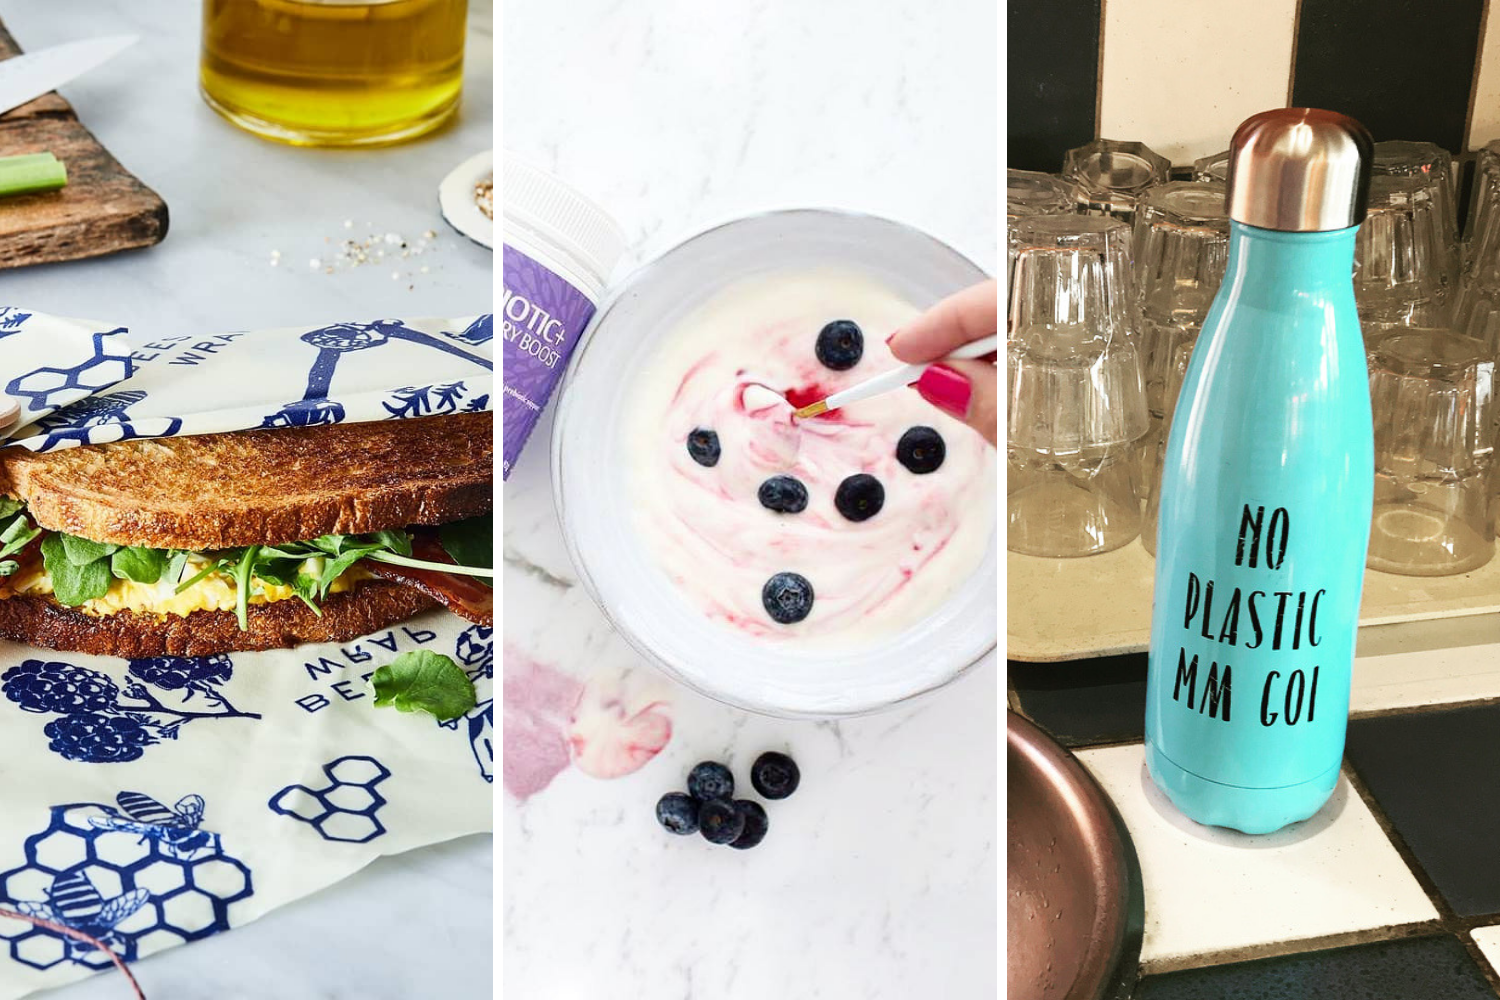 9 Zero Waste Instagram Accounts To Follow In Hong Kong